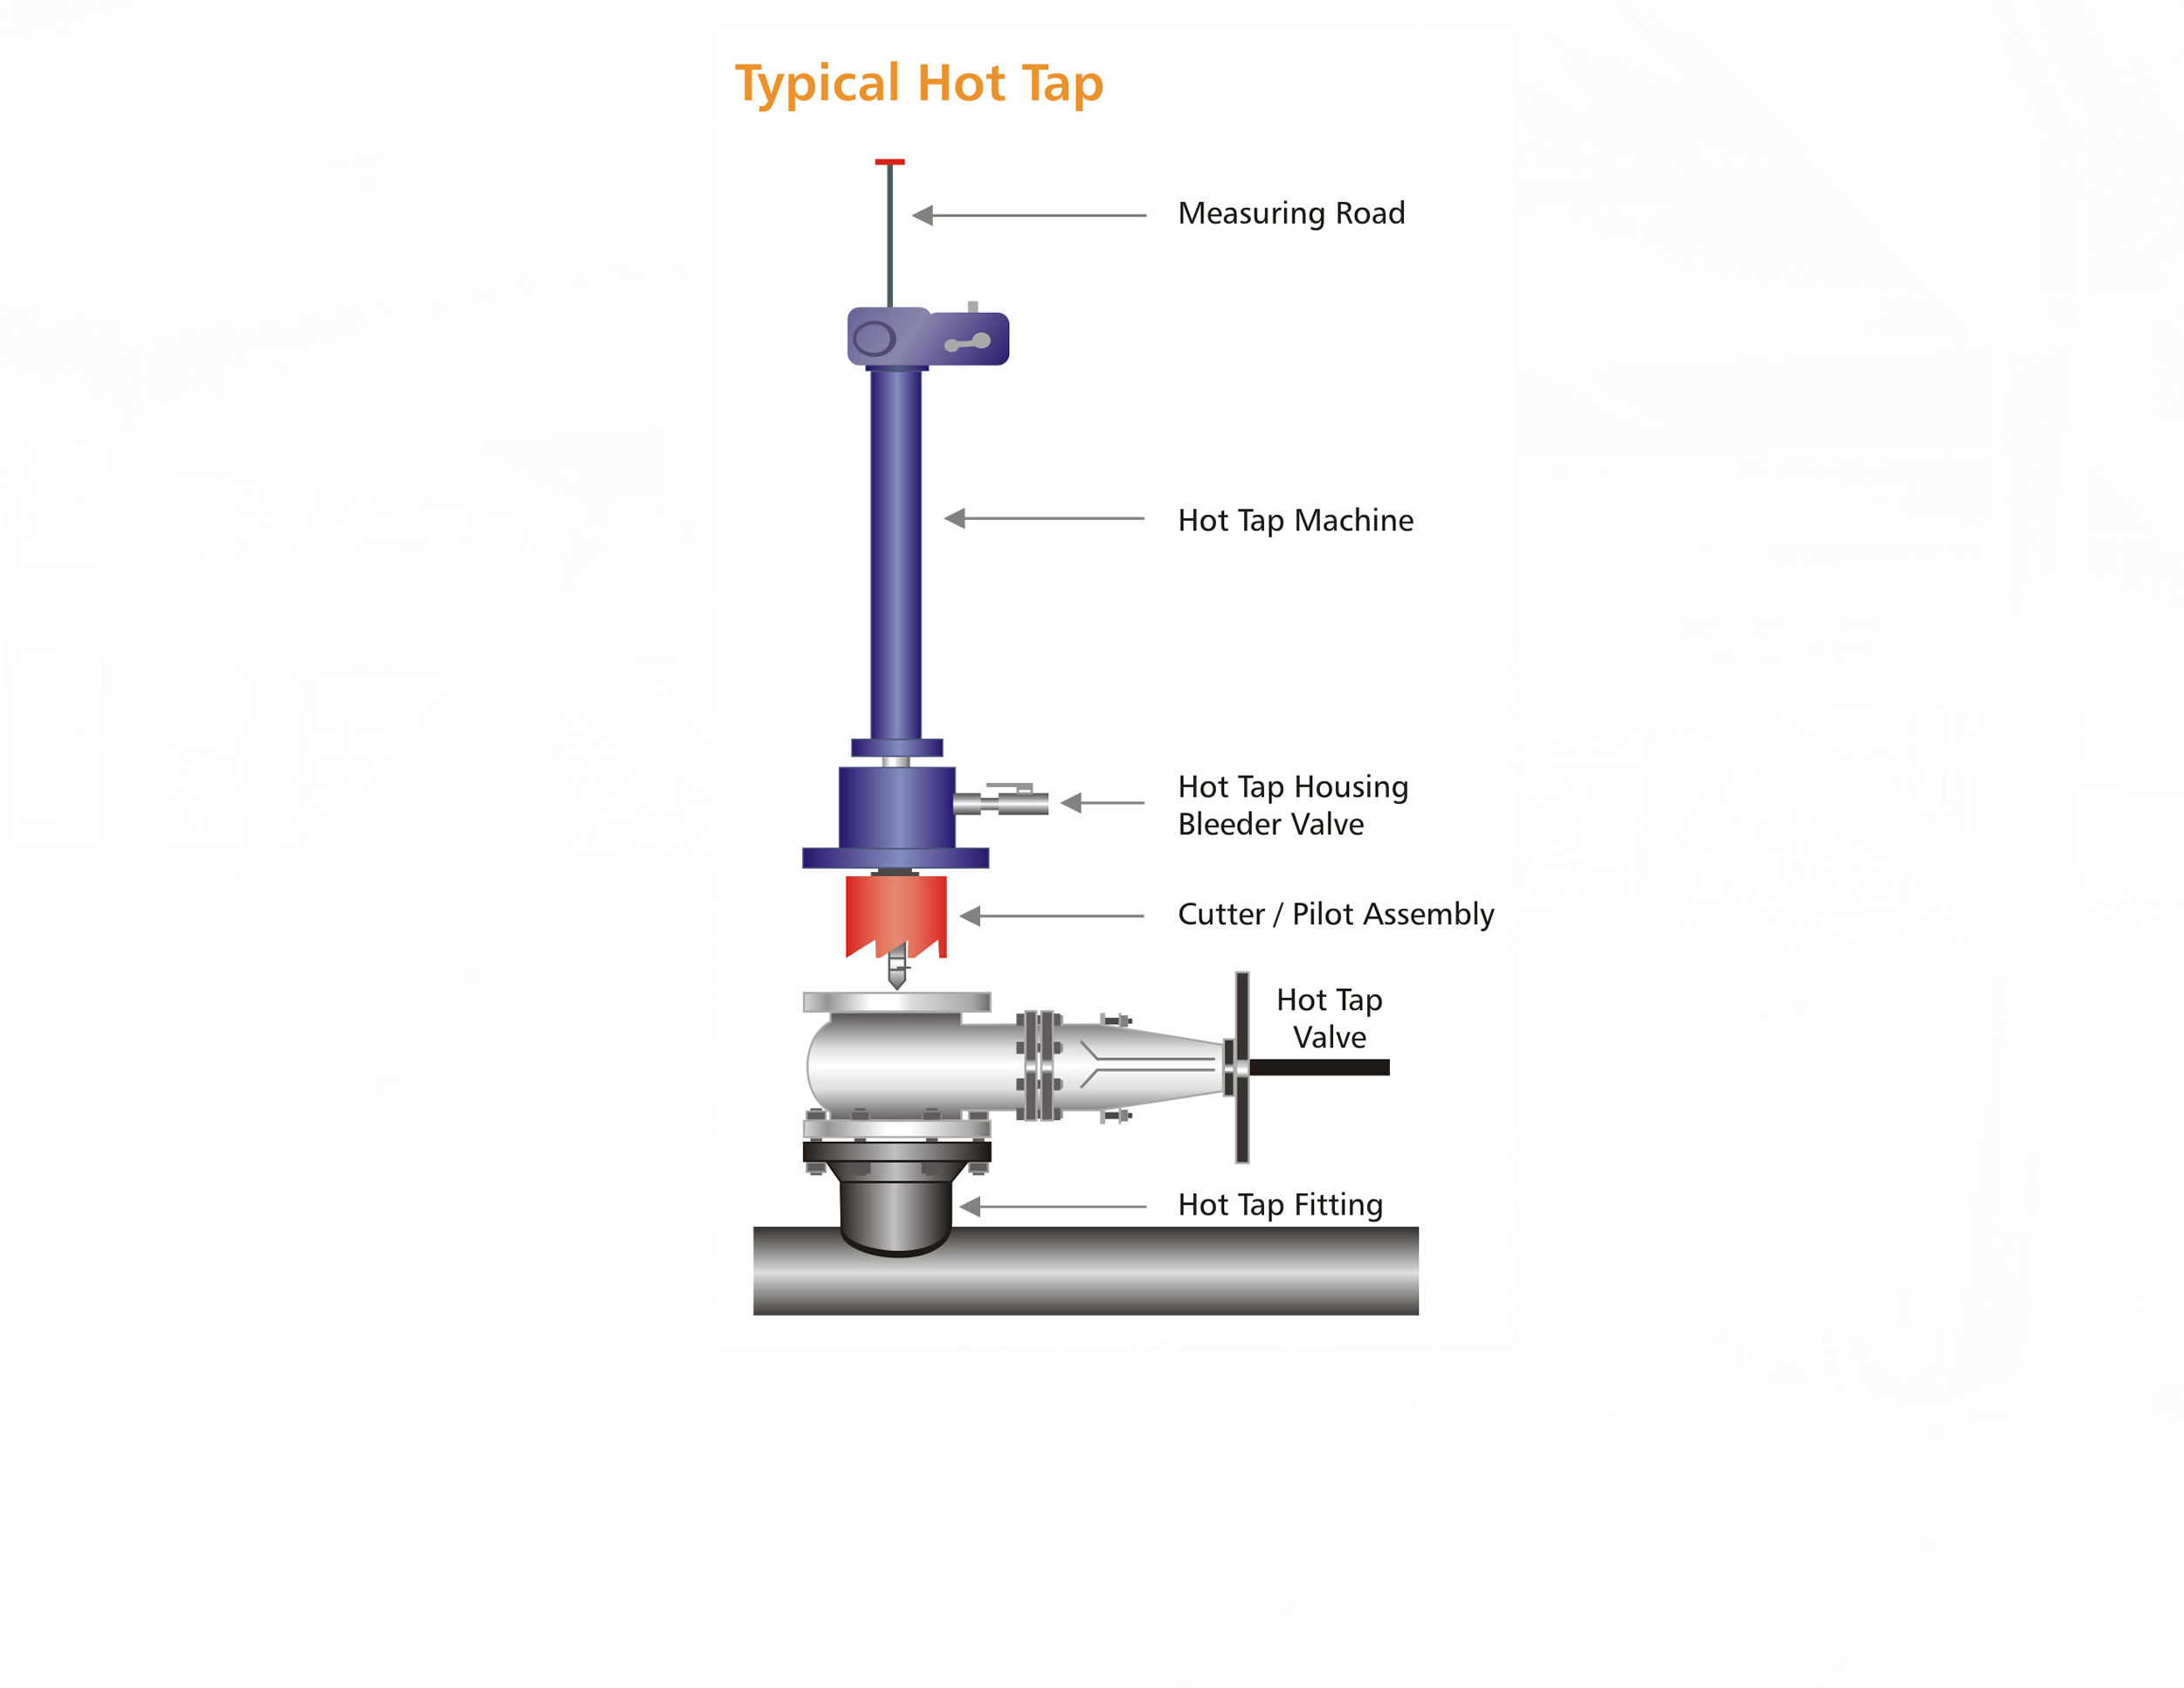 Services Hot Taps